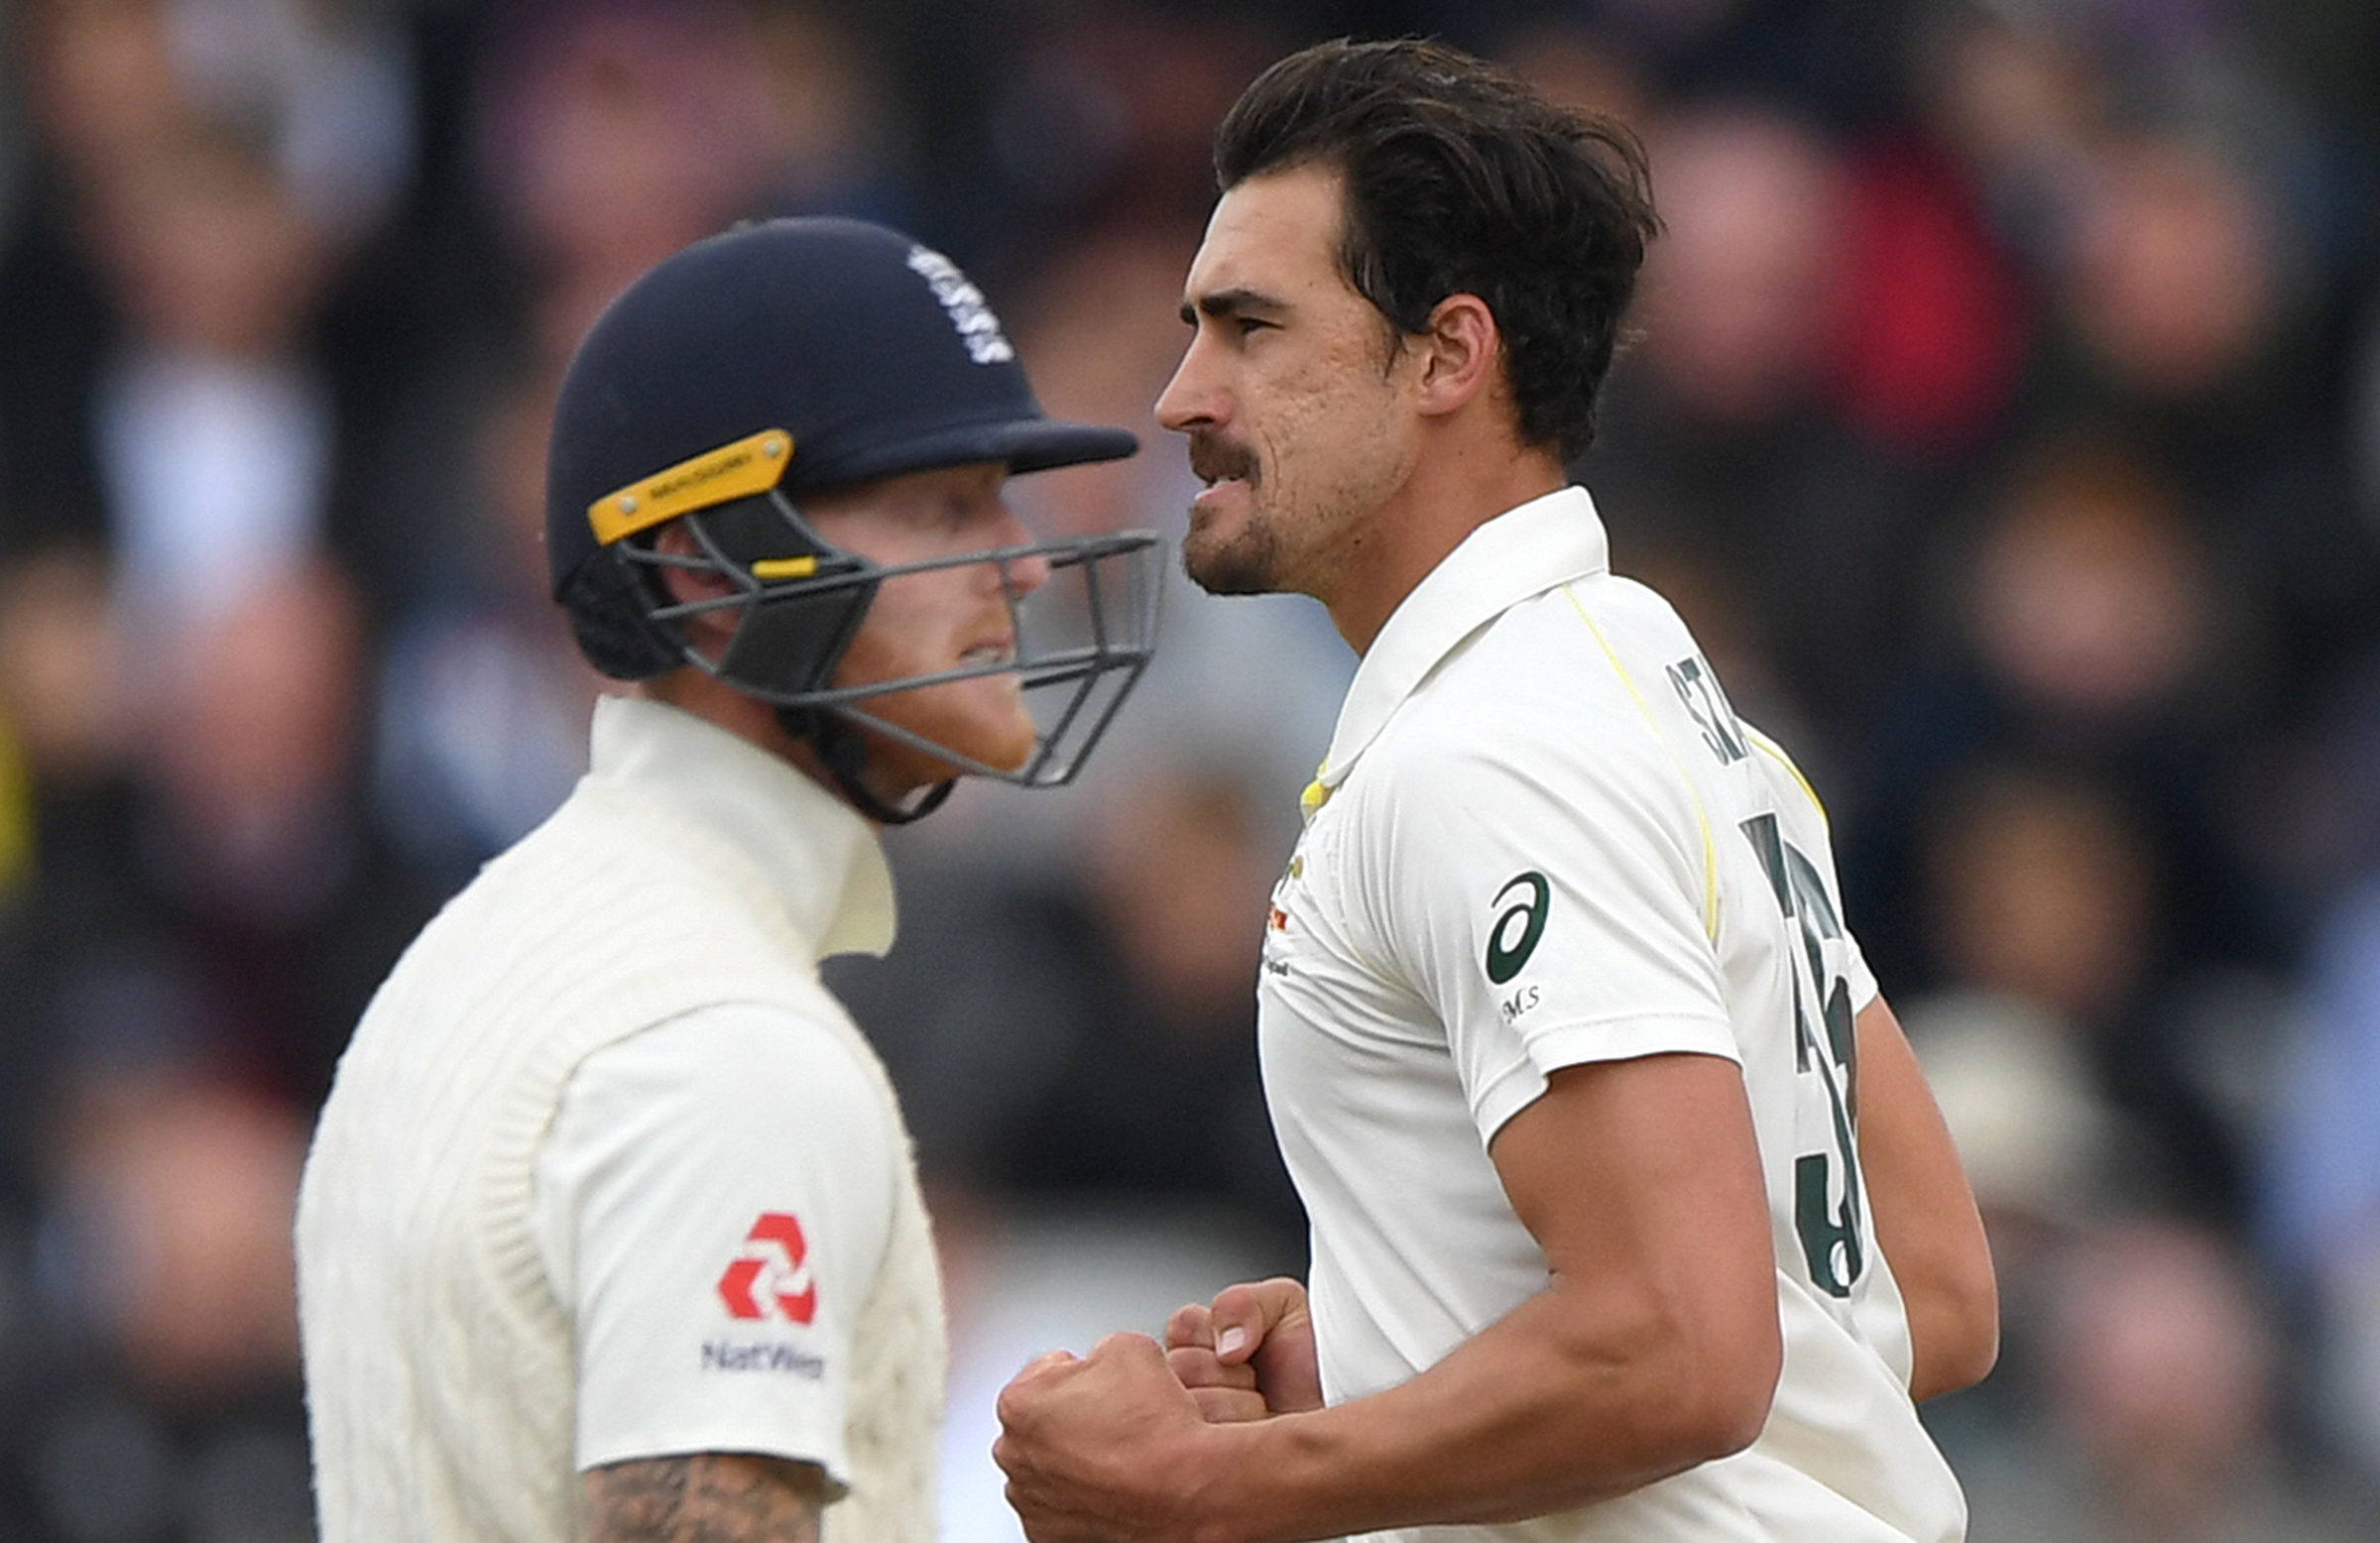 Starc got Stokes with a terrific delivery // Getty